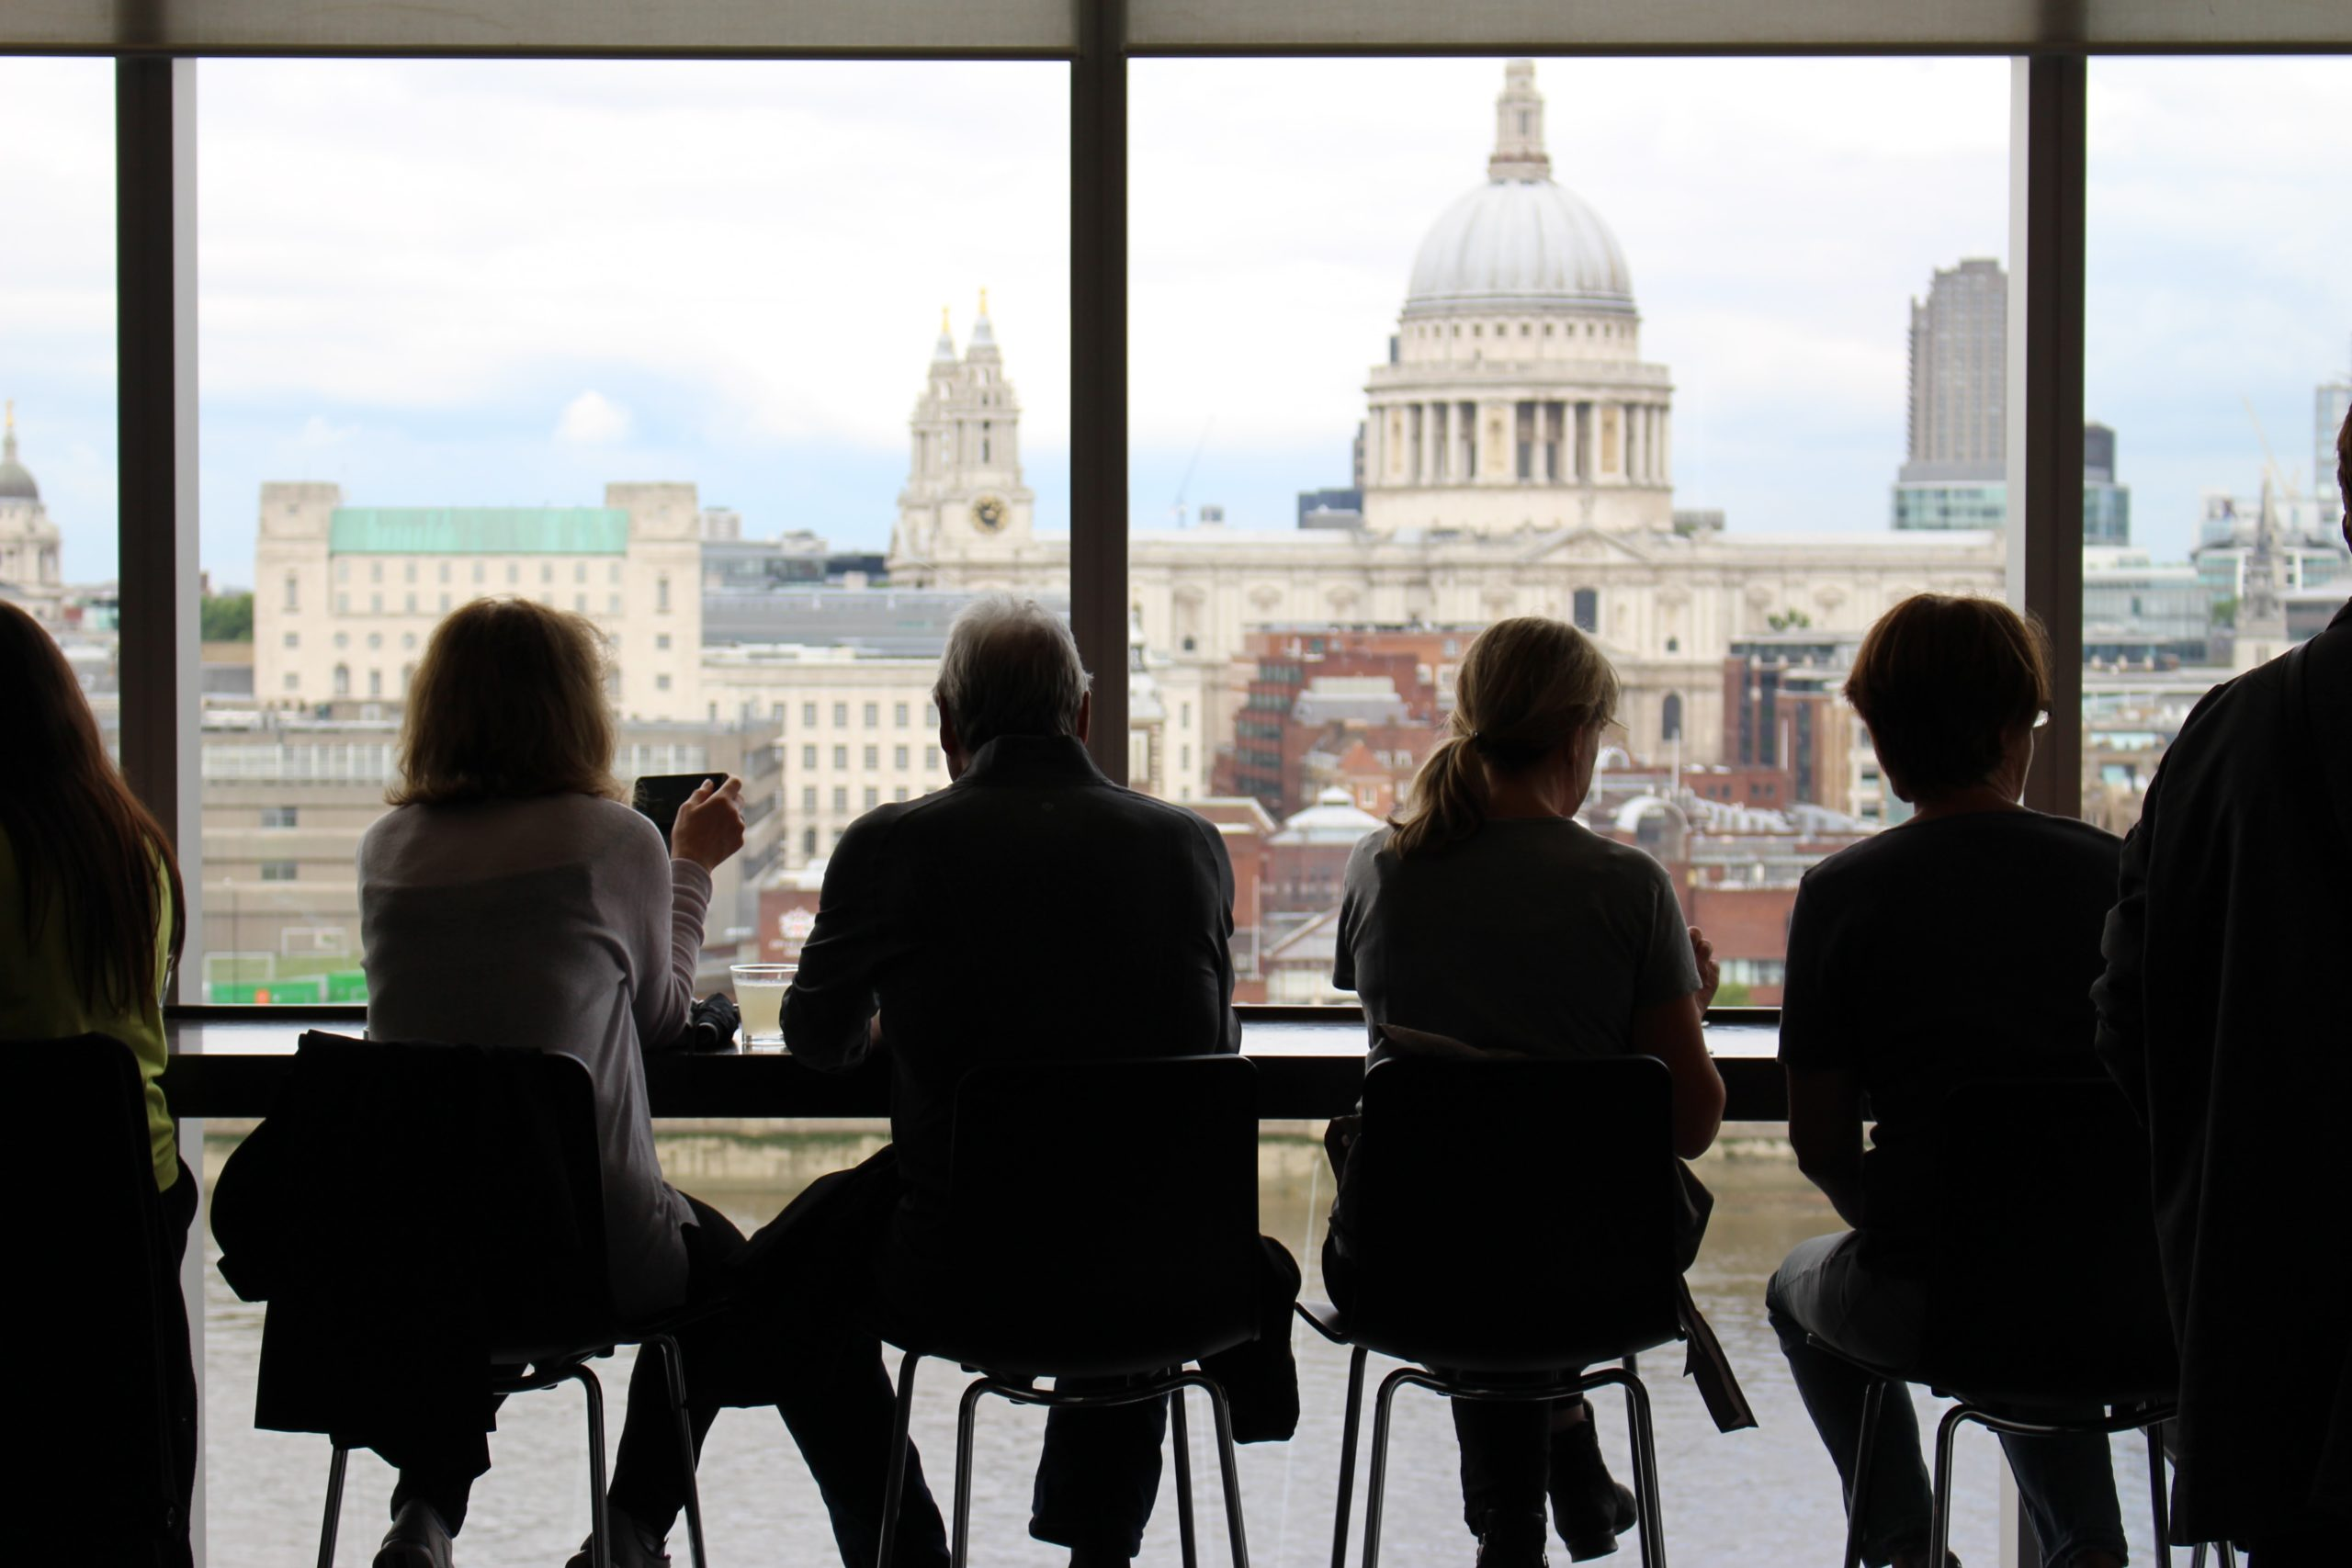 a back shot of people sitting along the window in a cafe in London